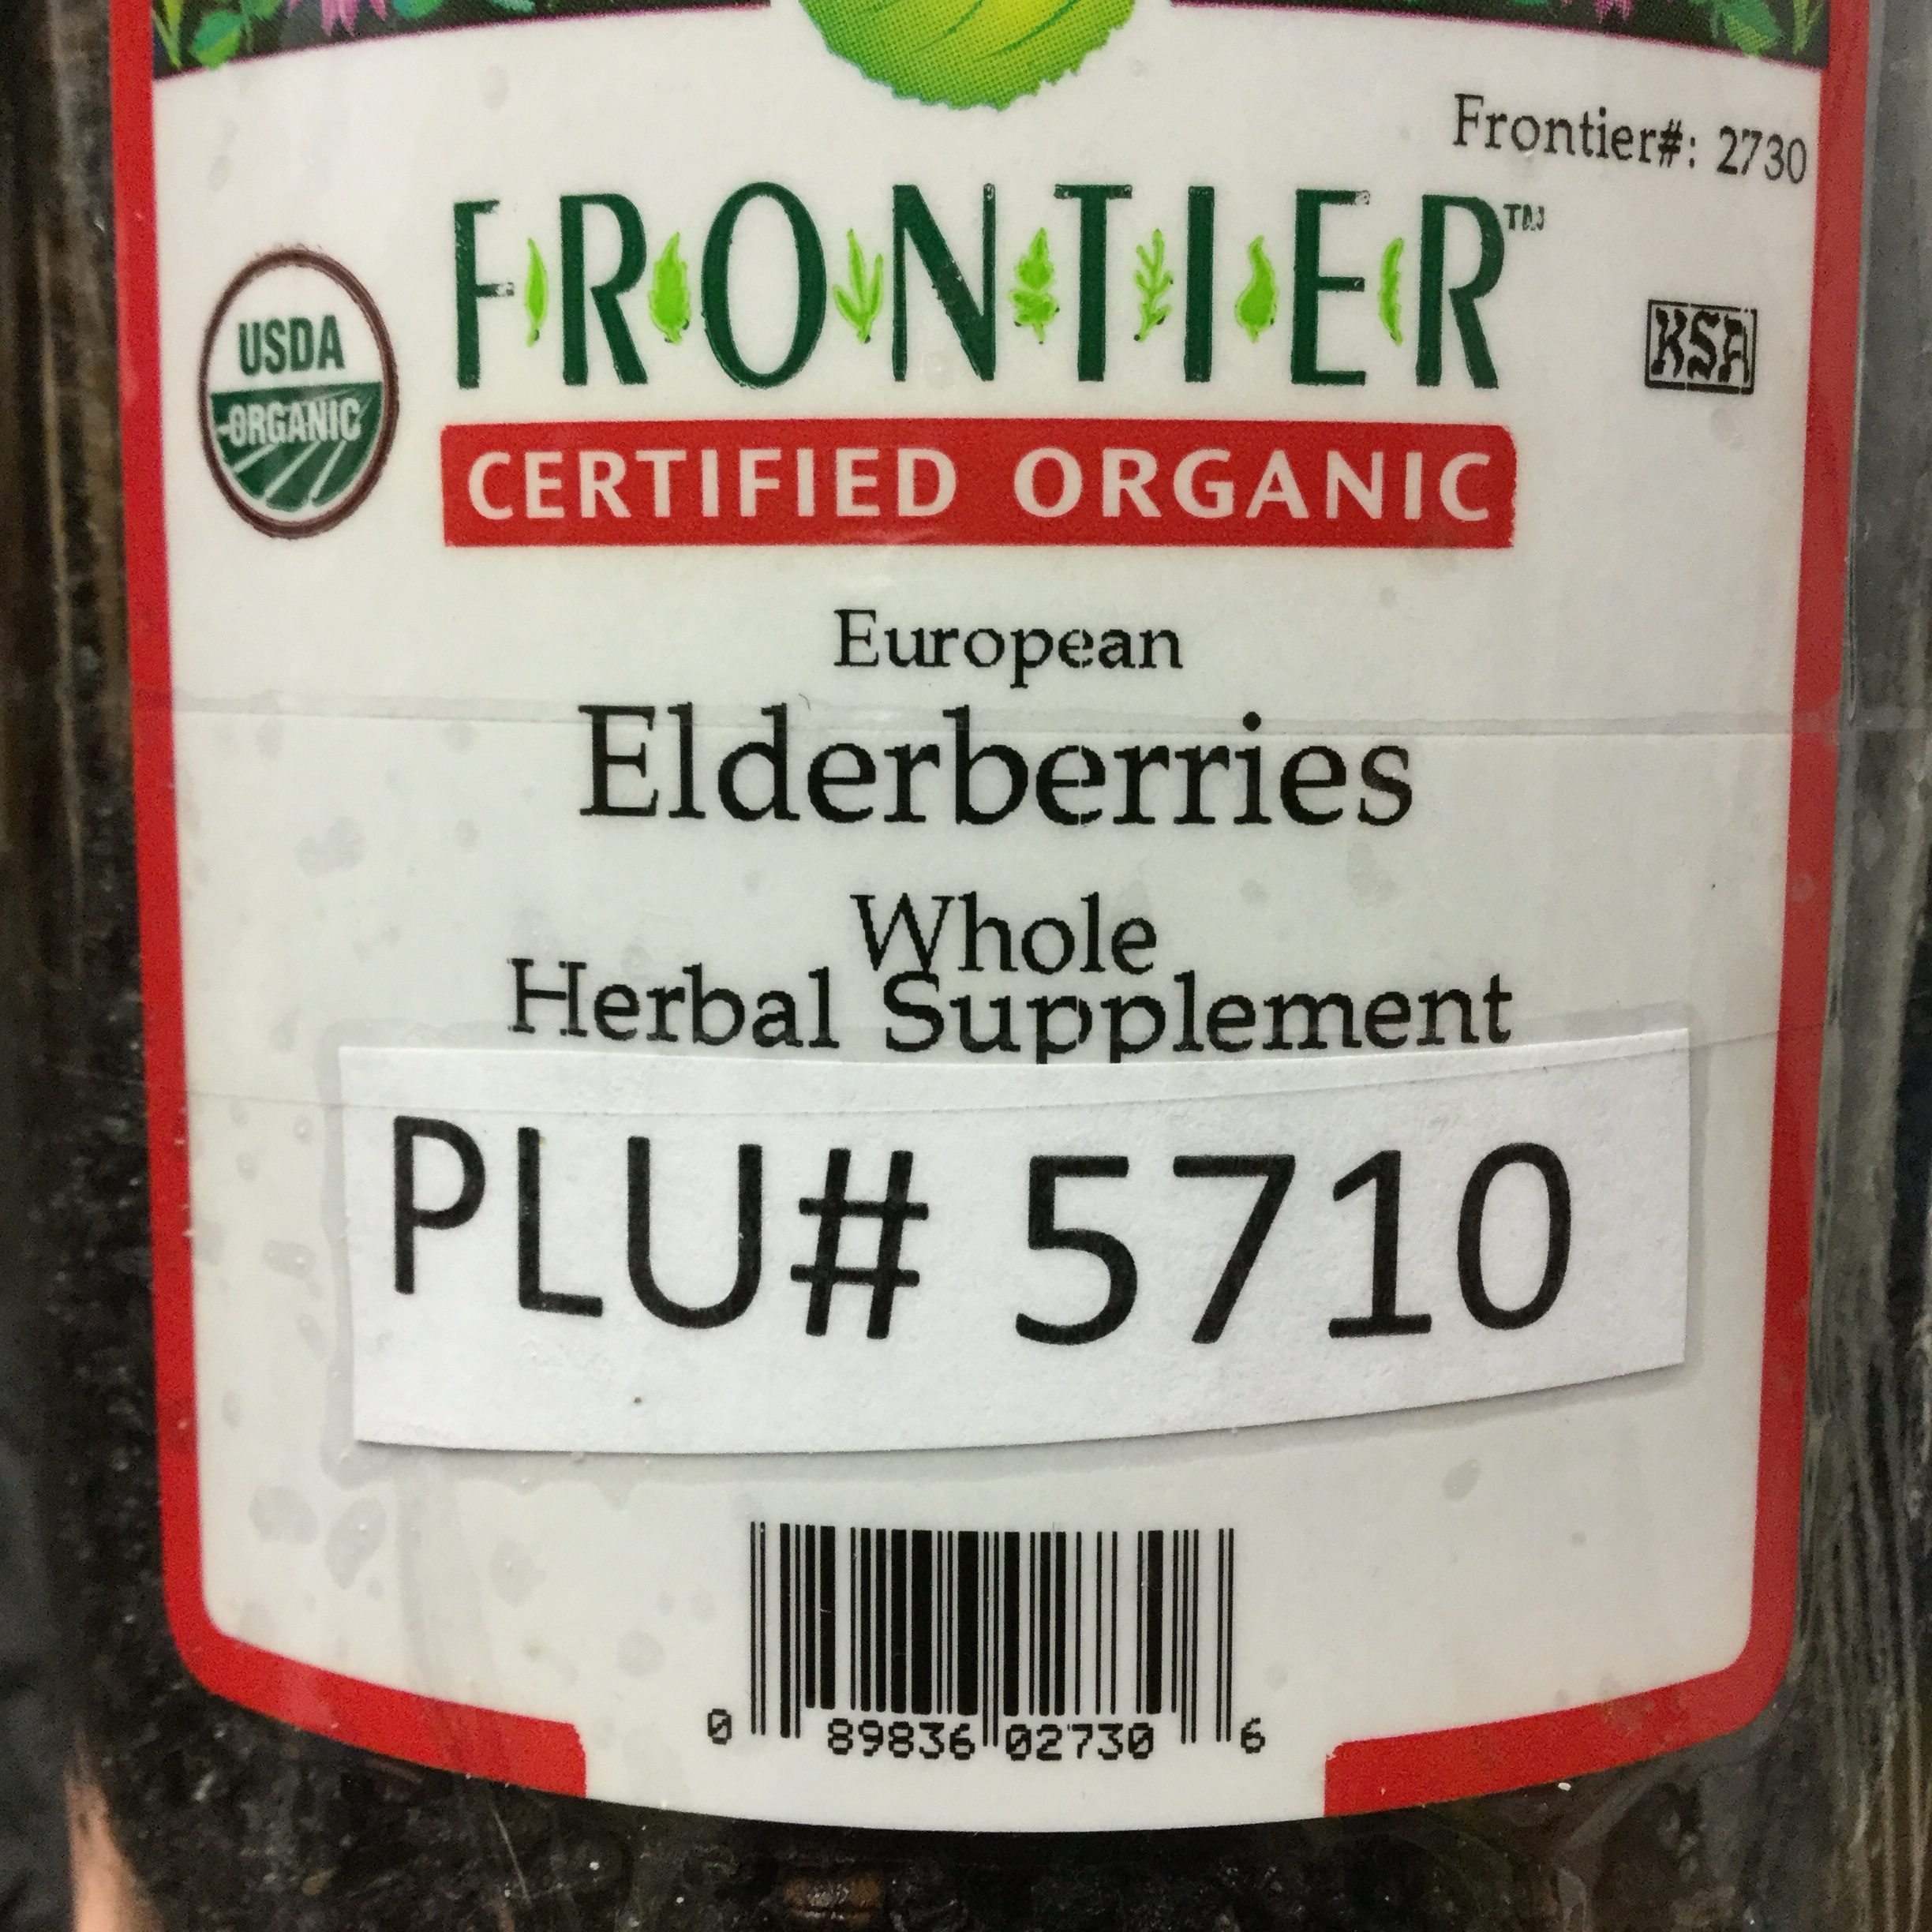 Elderberries, European (0.25 lb)